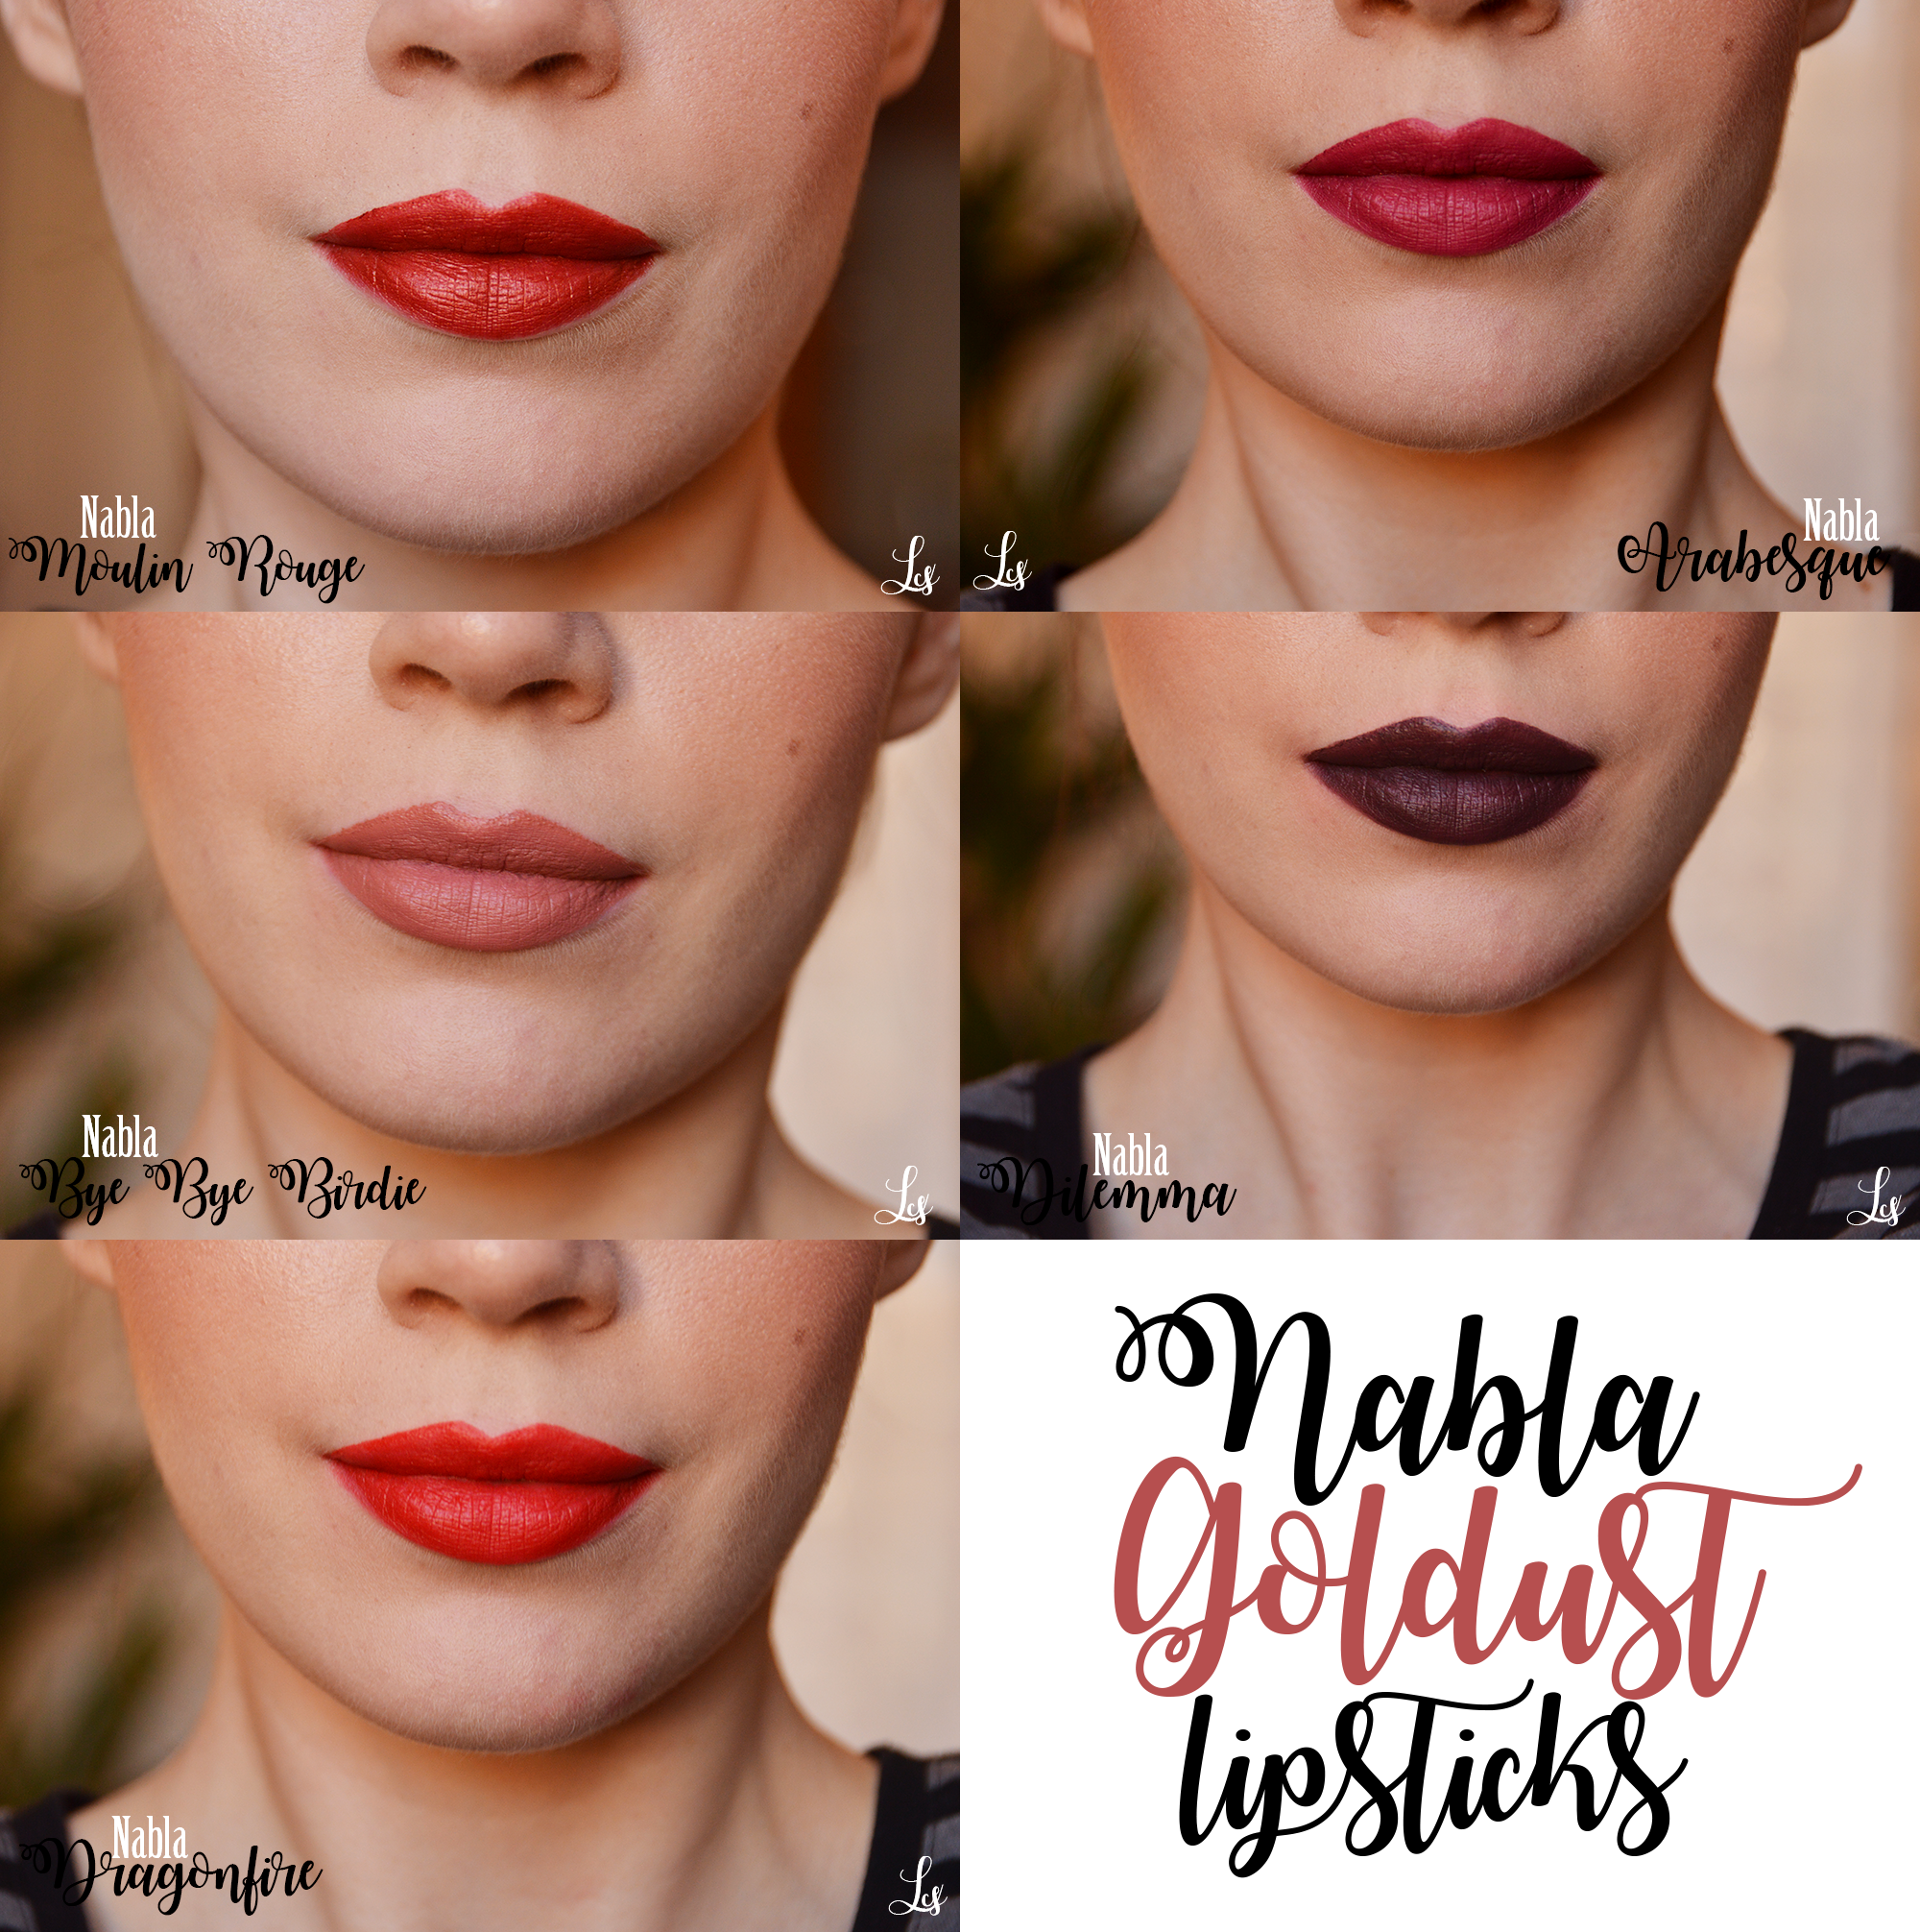 nabla-goldust-lipstick-swatches